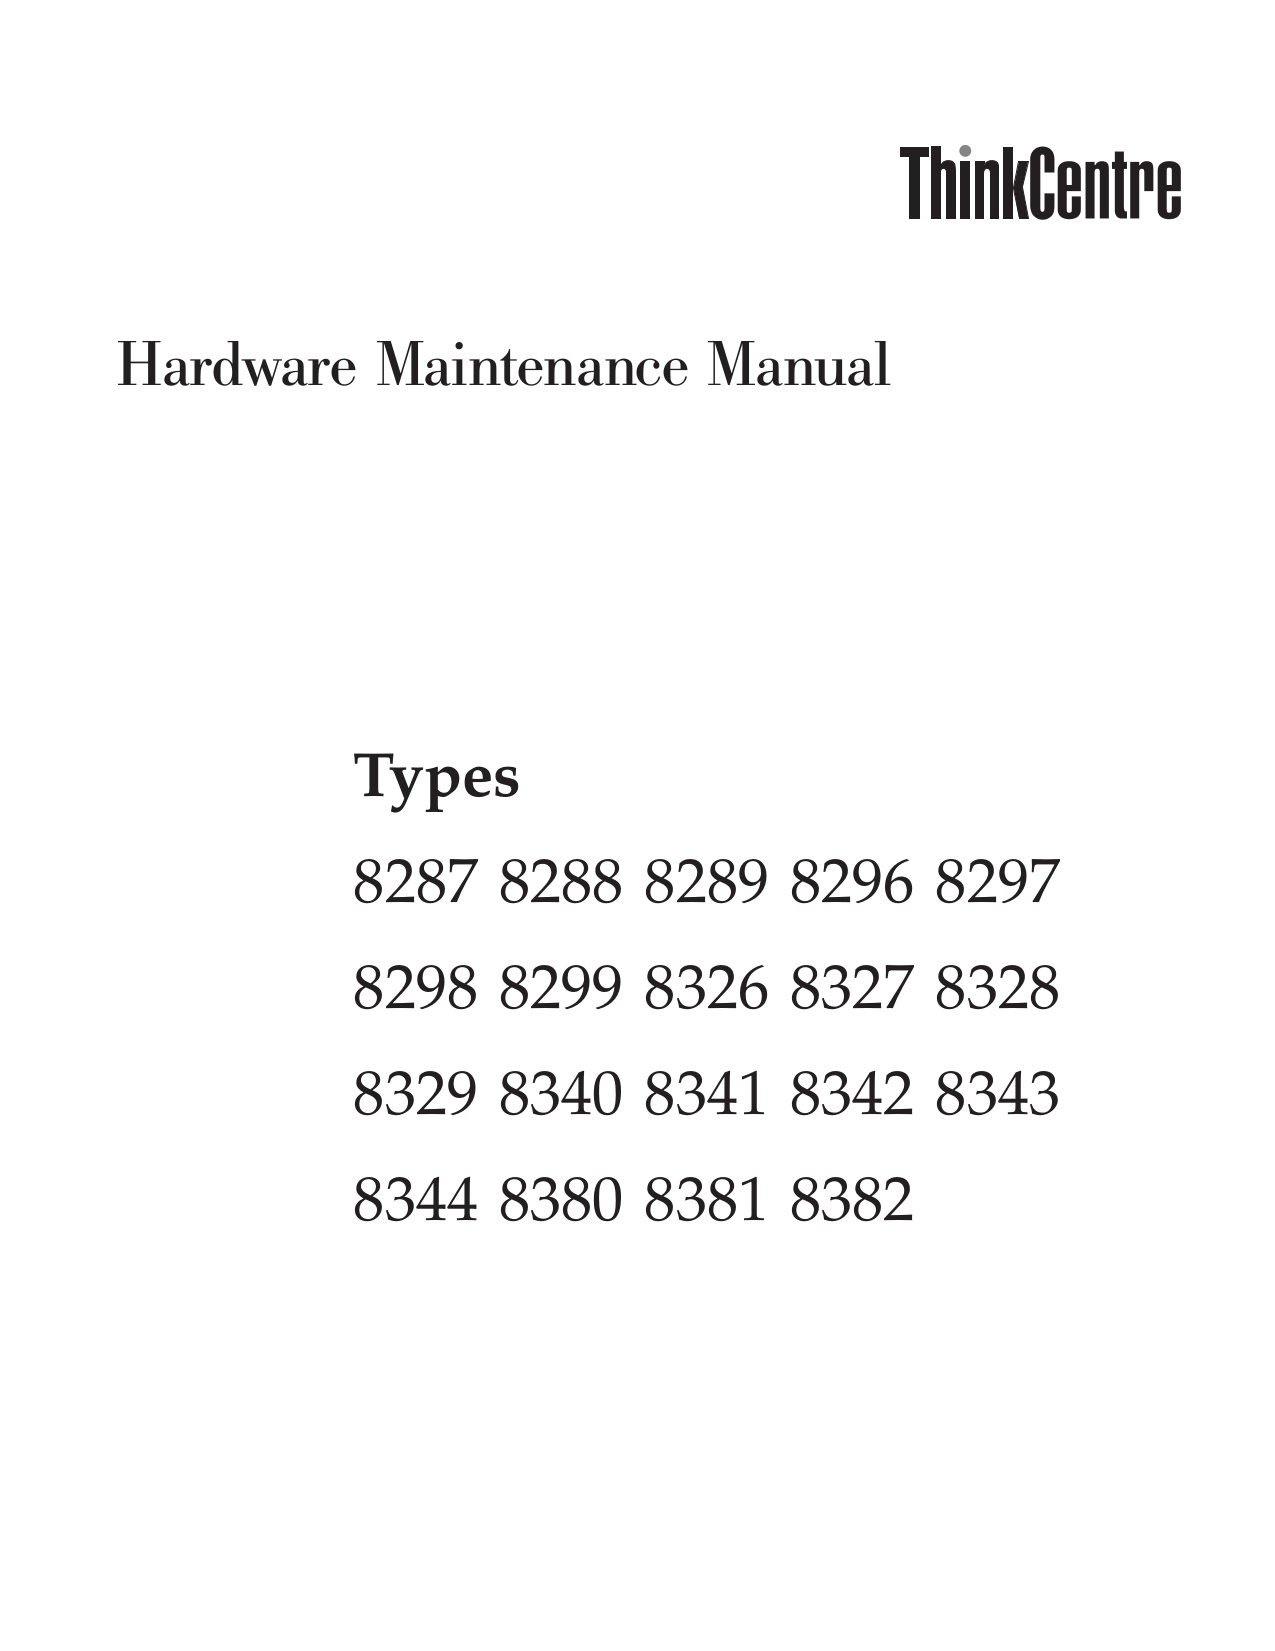 pdf for Lenovo Desktop ThinkCentre A52 8380 manual